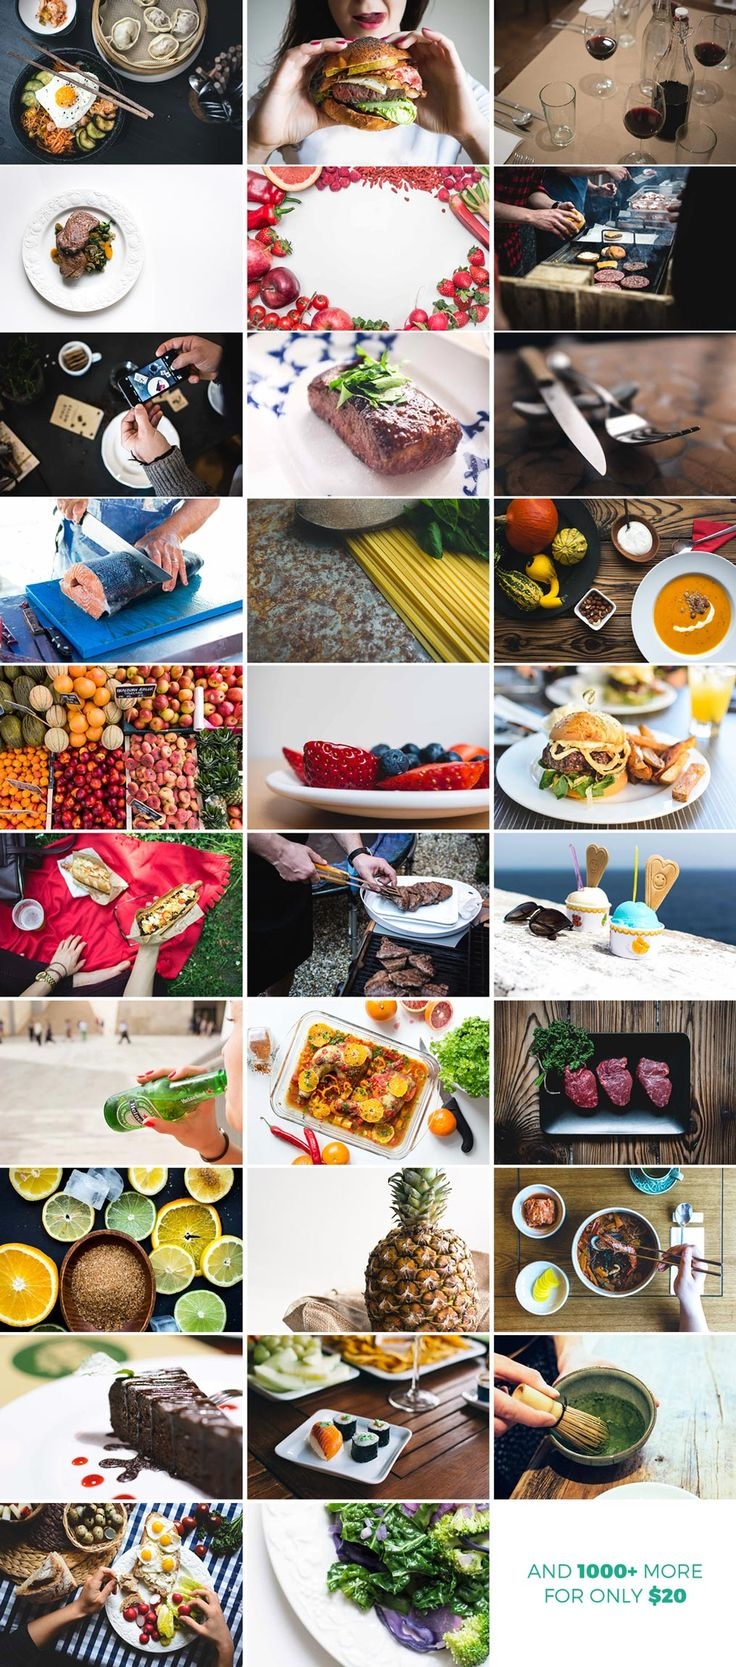 Download All 1000+ Food Pictures - FoodiesFeed